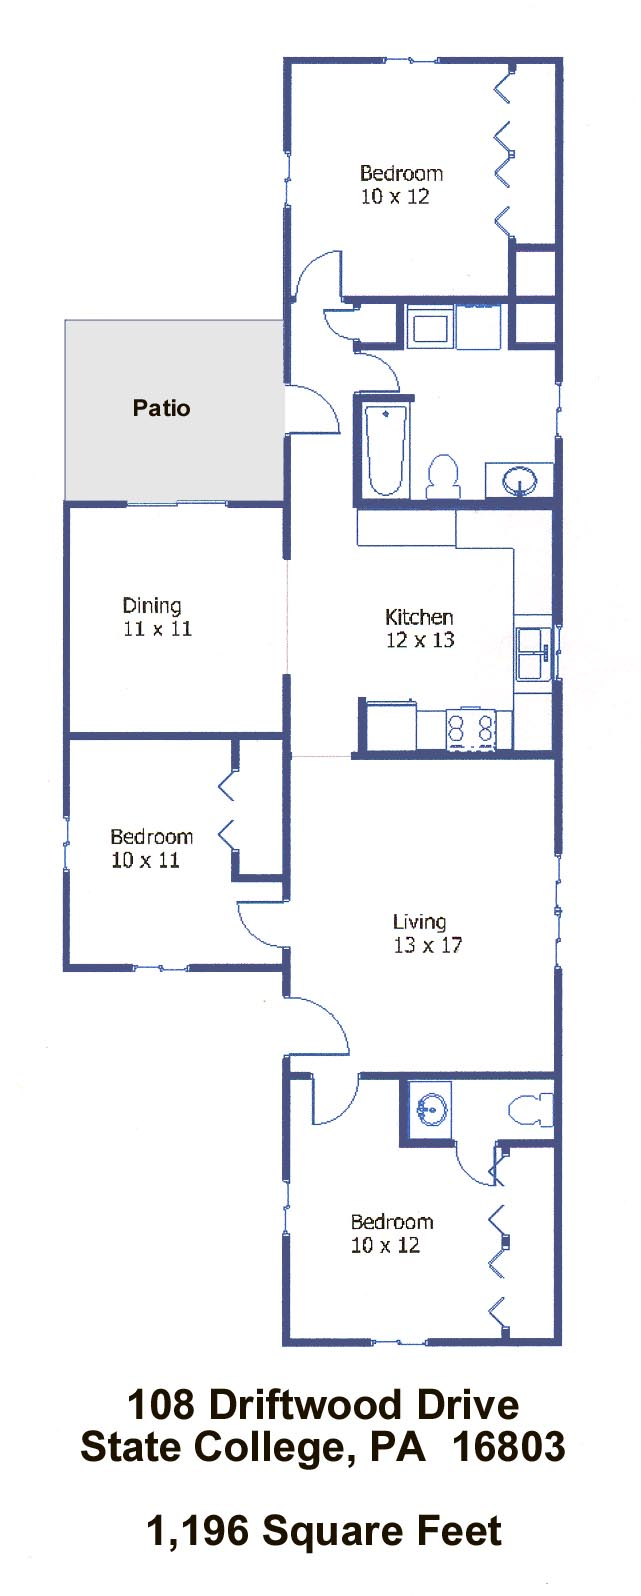 Floor plan of the affordable 3-bedroom house at 108 Driftwood Drive in State College, PA